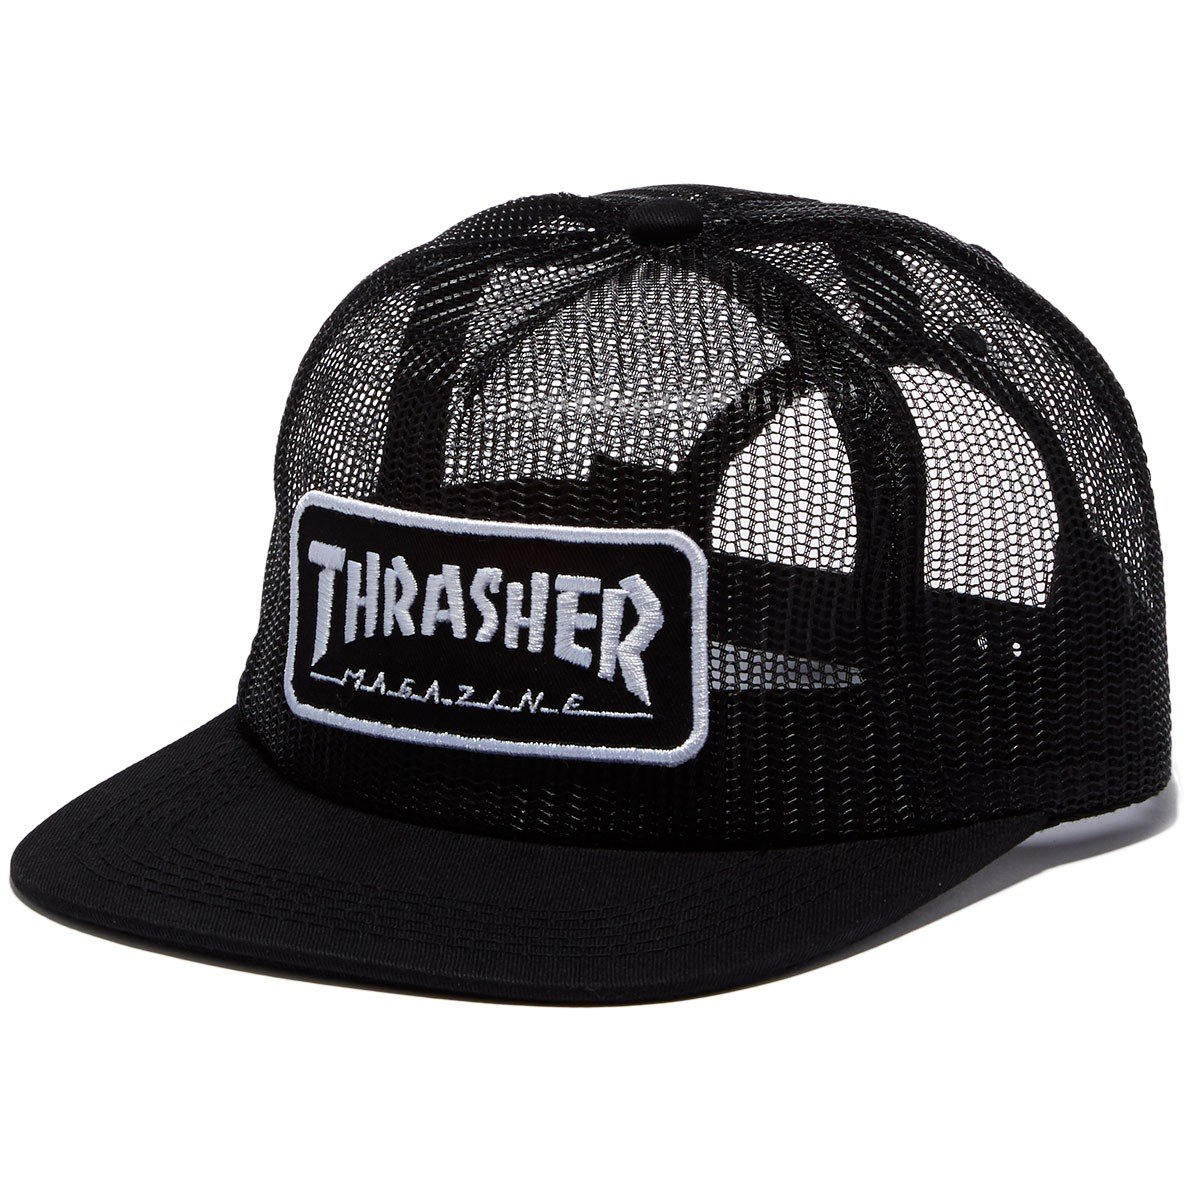 8aae27f5ed4 Thrasher Skategoat Wool Blend Snap Blk Click to zoom